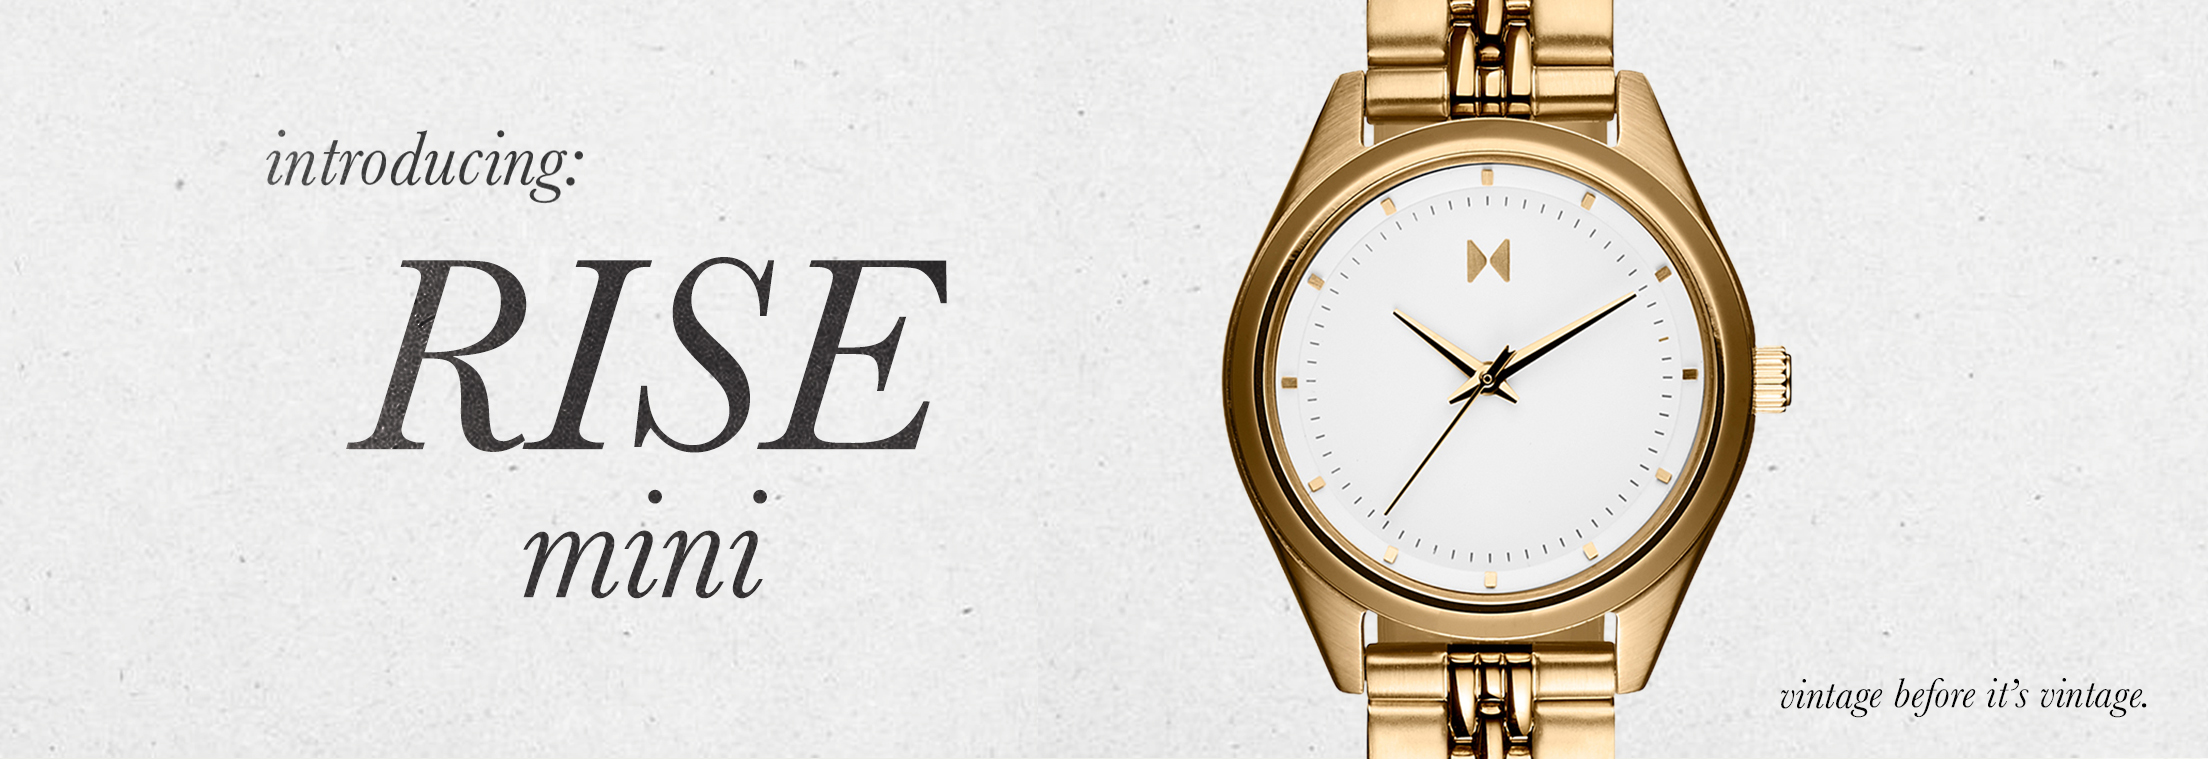 Introducing: Rise Mini. Vintage before it's vintage.